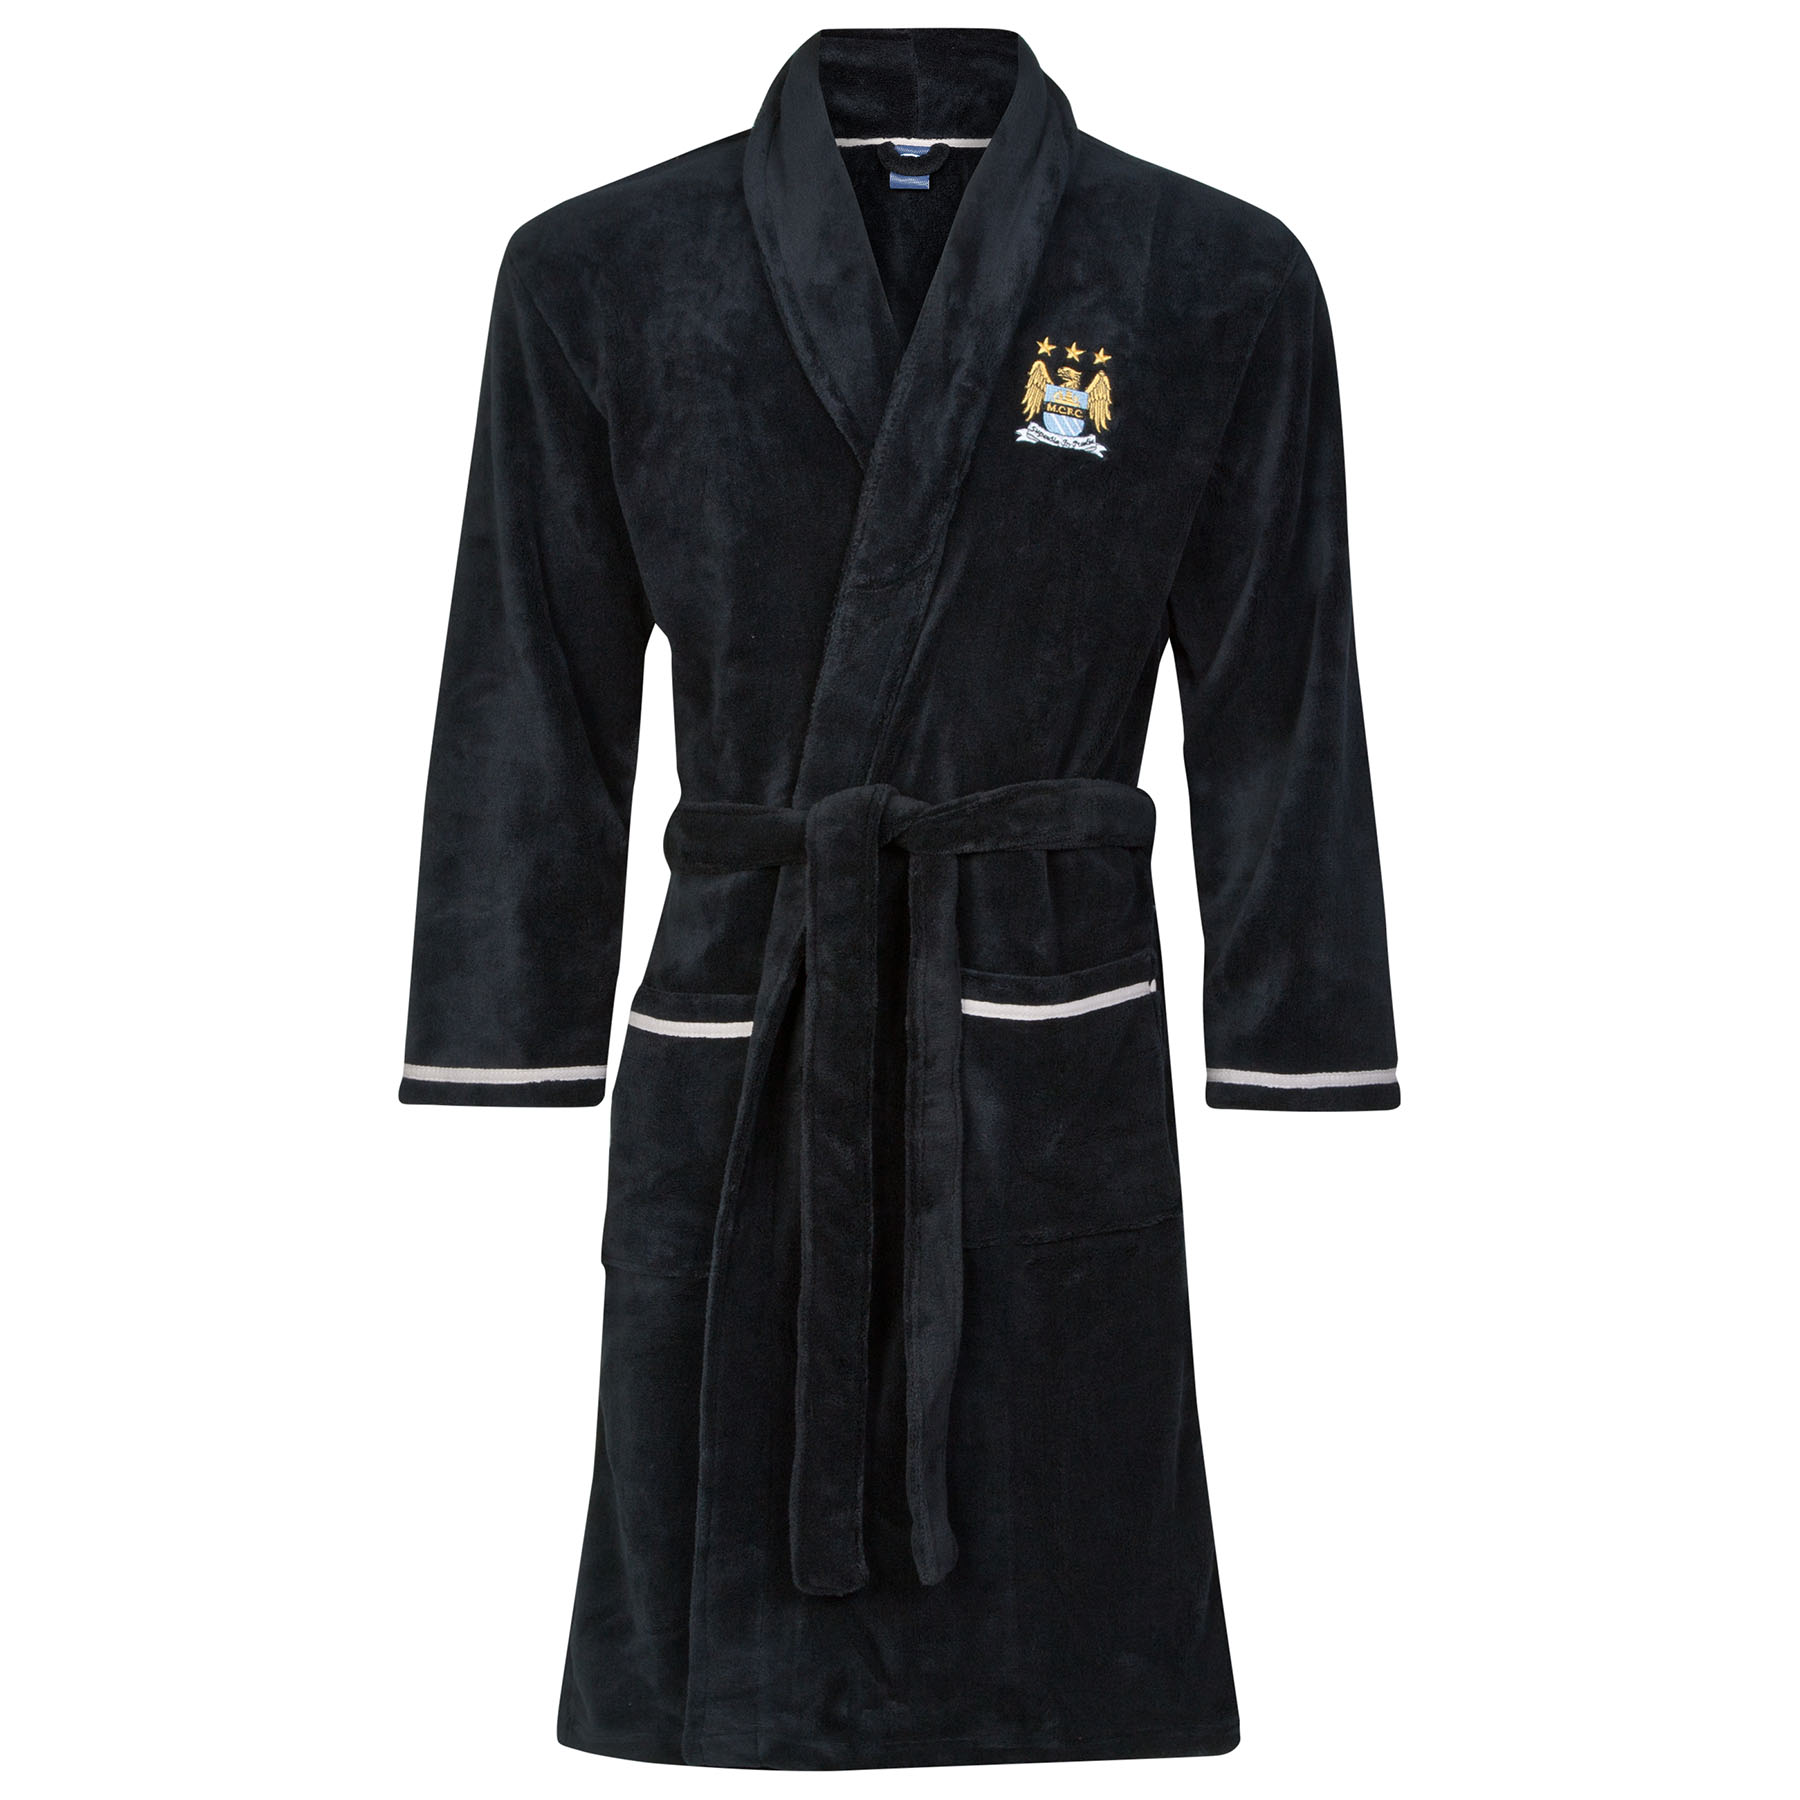 Manchester City Robe - Black - Mens